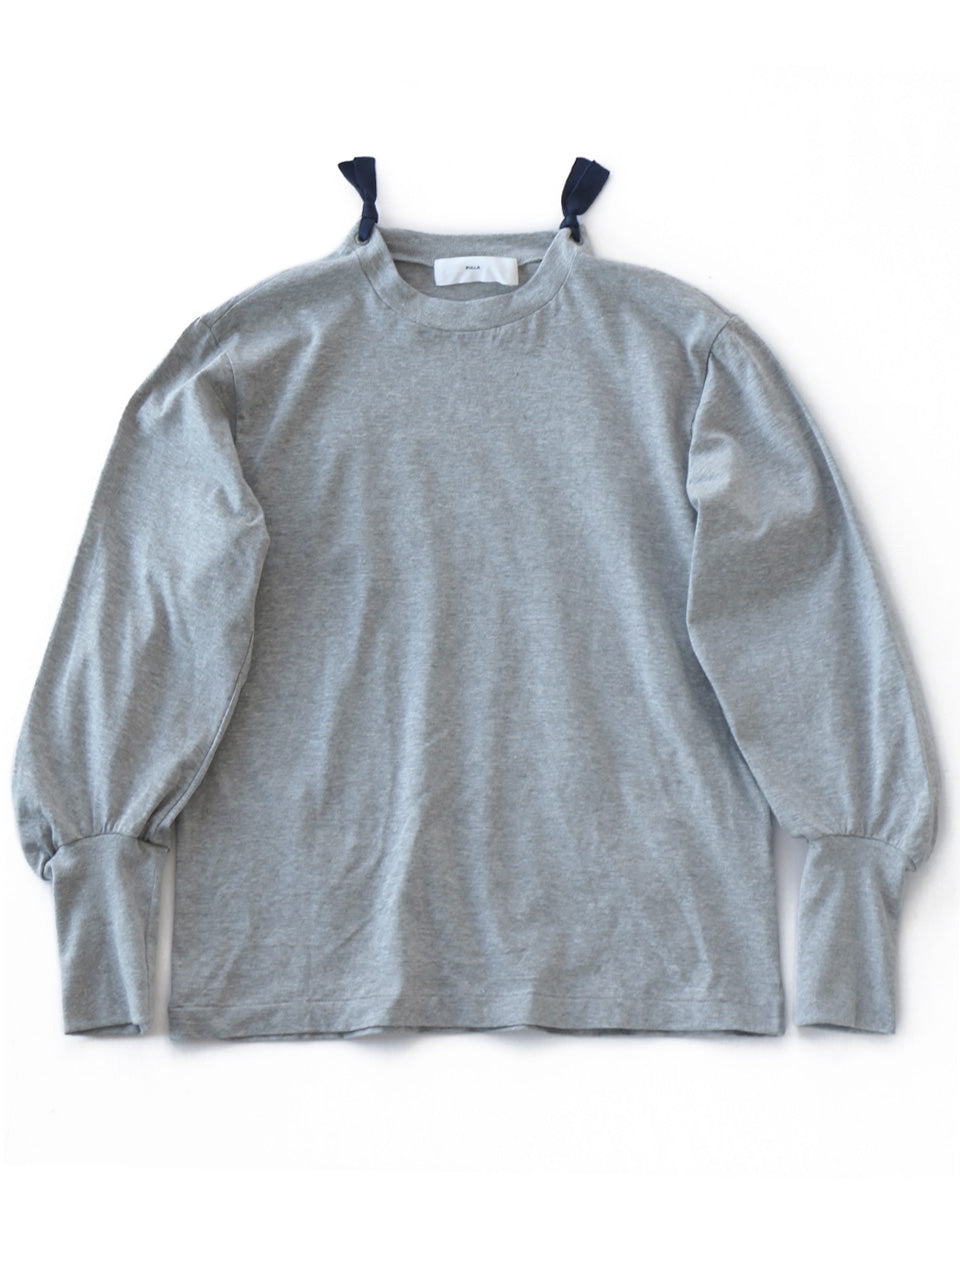 Cotton Jersey Long Sleeve (grey)